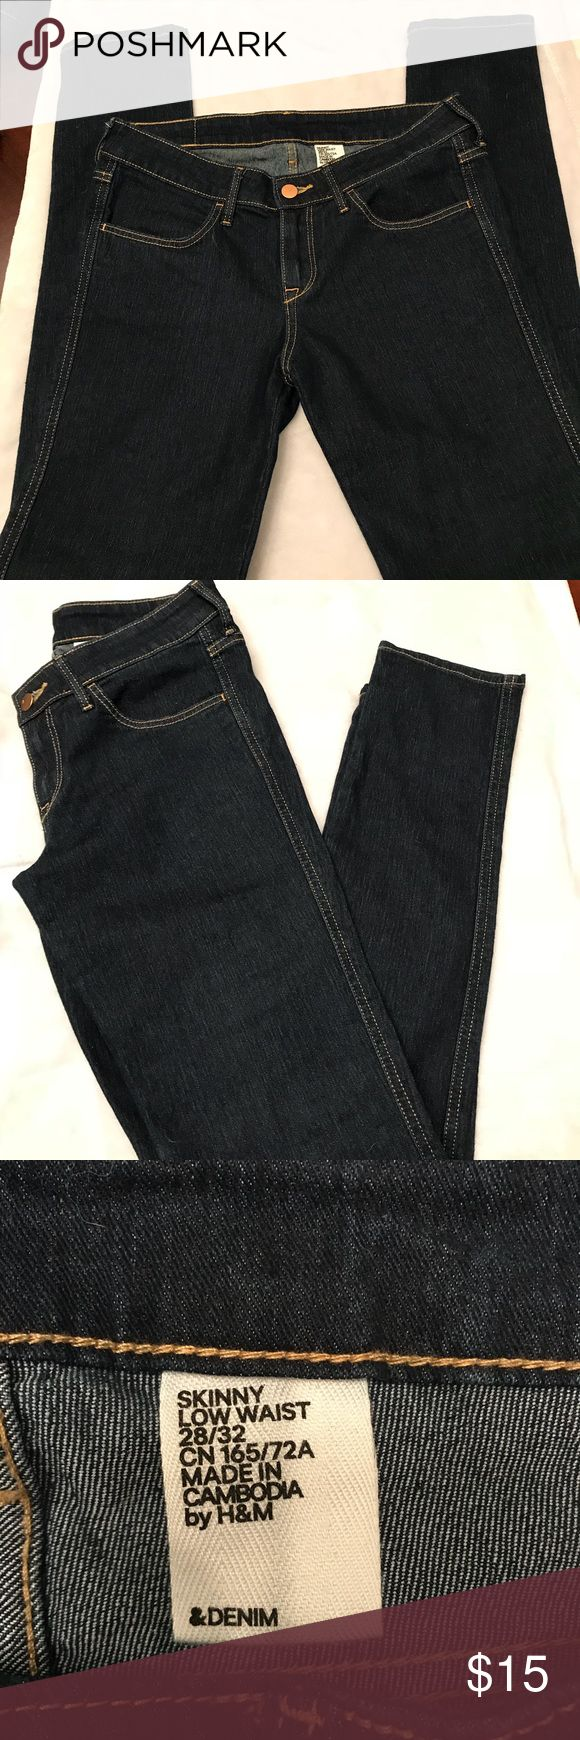 H&M skinny low waist jeans Like new. No stains or flaws. Skinny low waist. Inseam 32 H&M Jeans Skinny